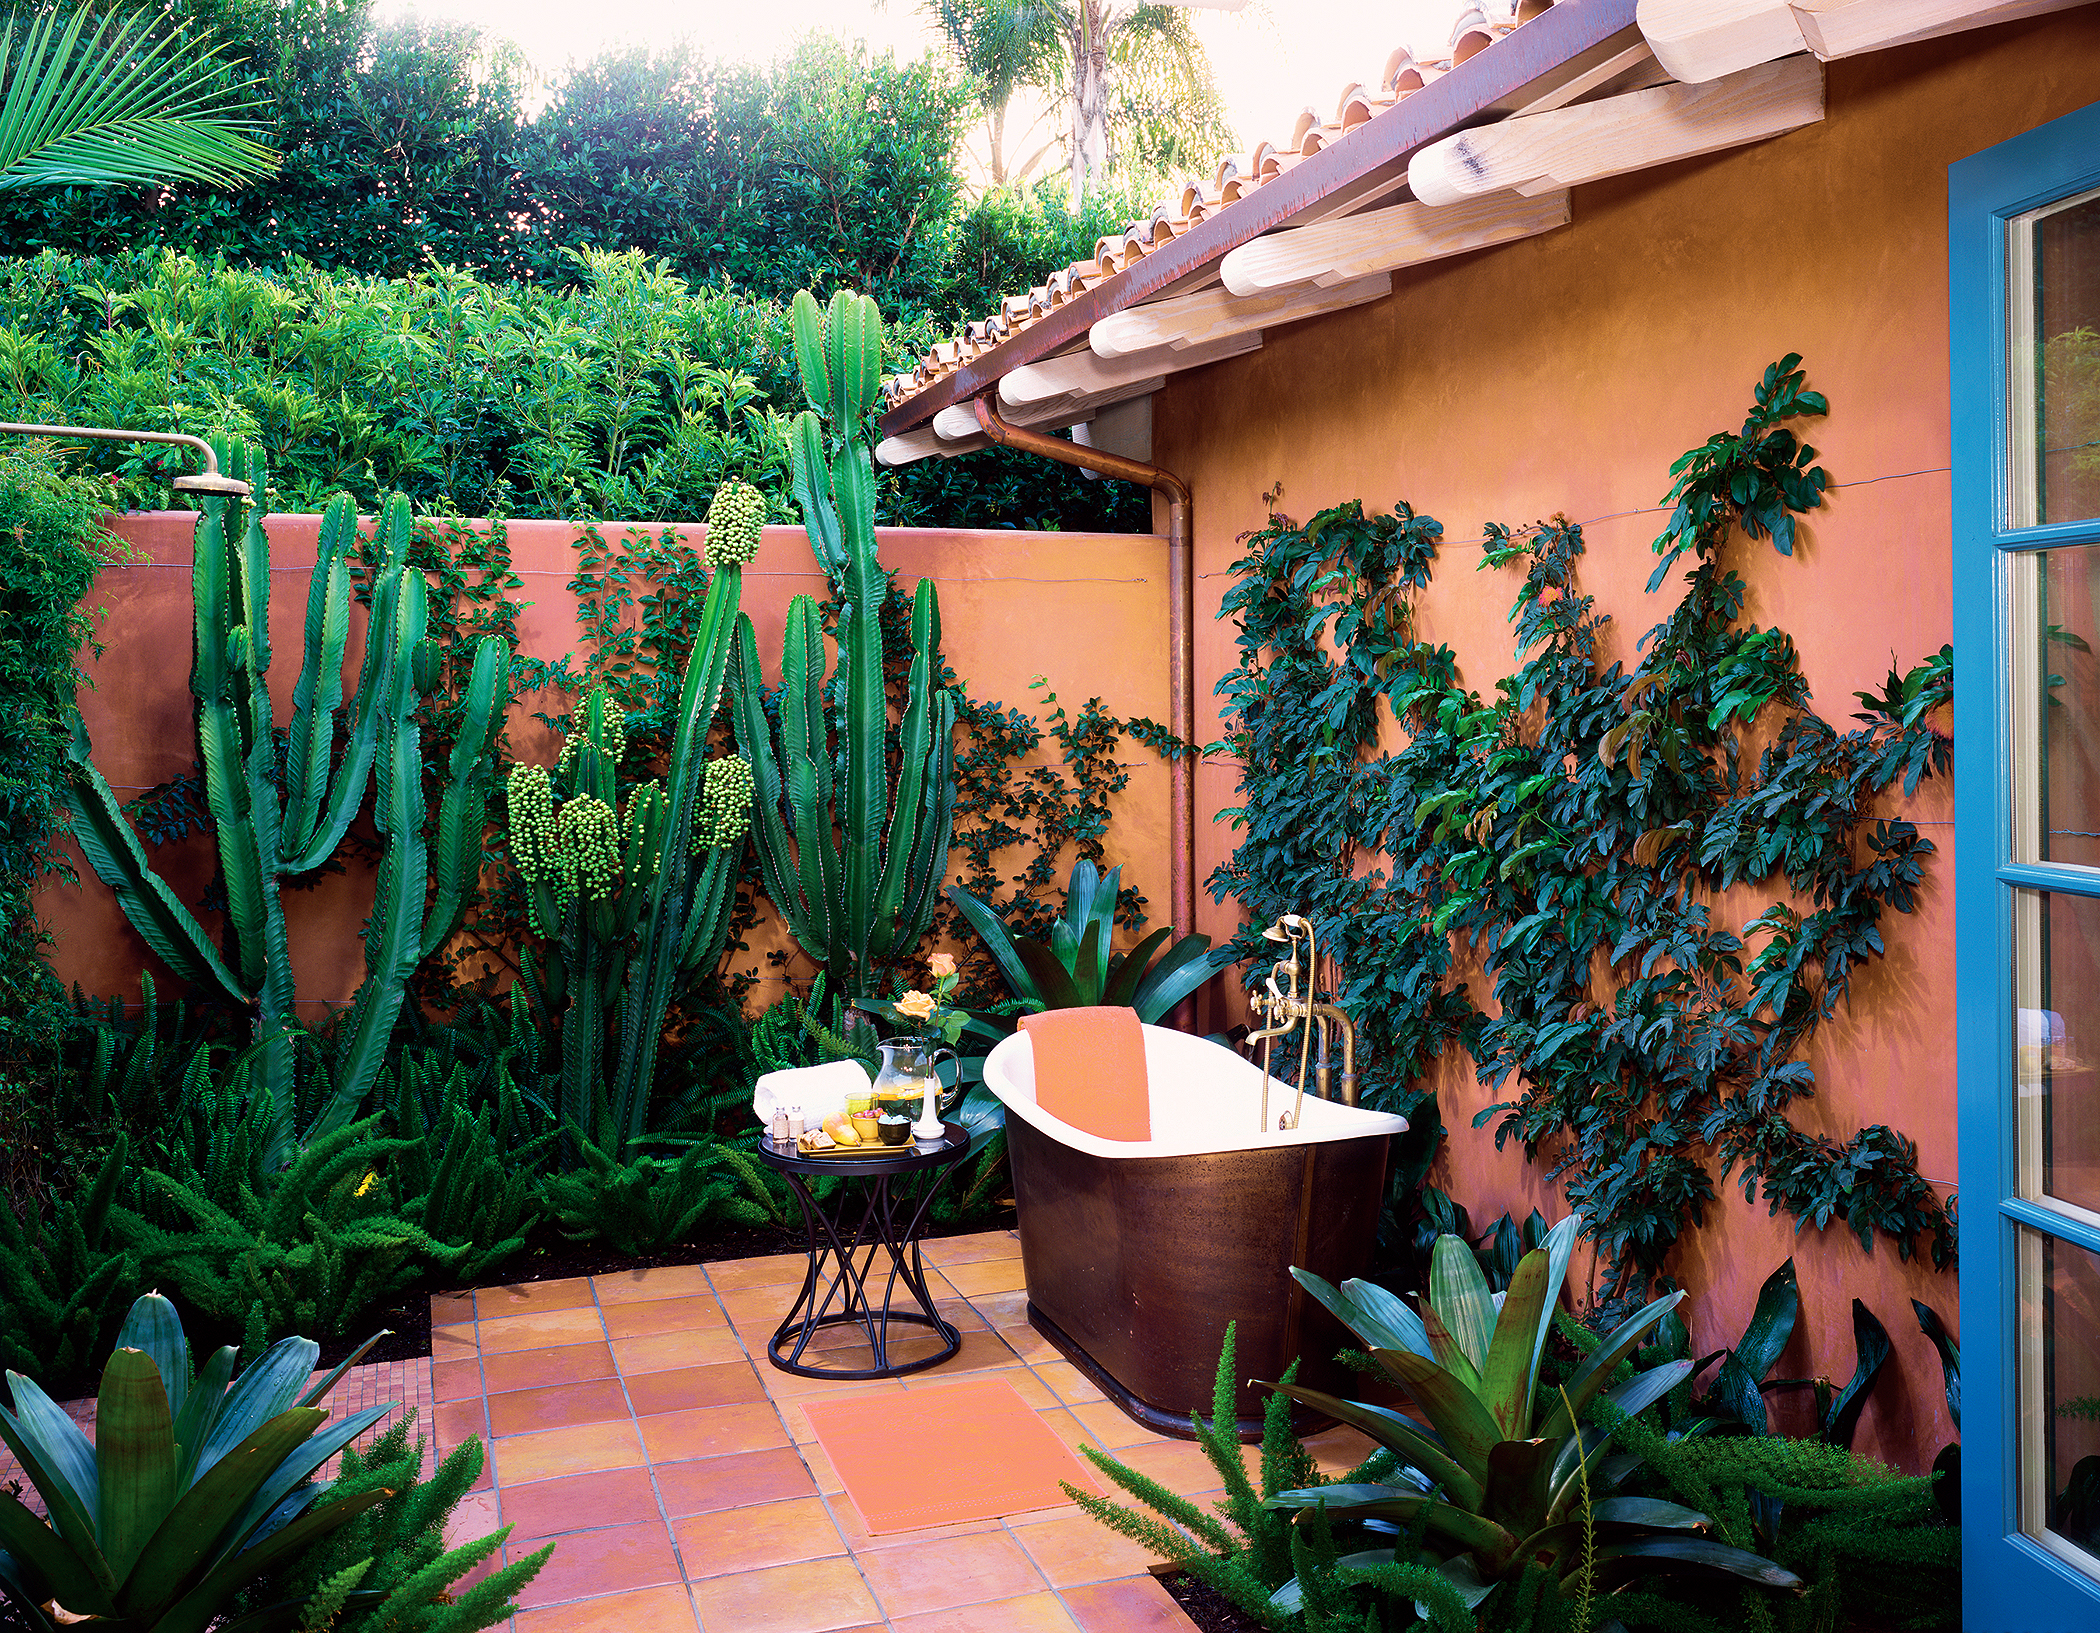 SPA_Copper Bath Patio.jpg